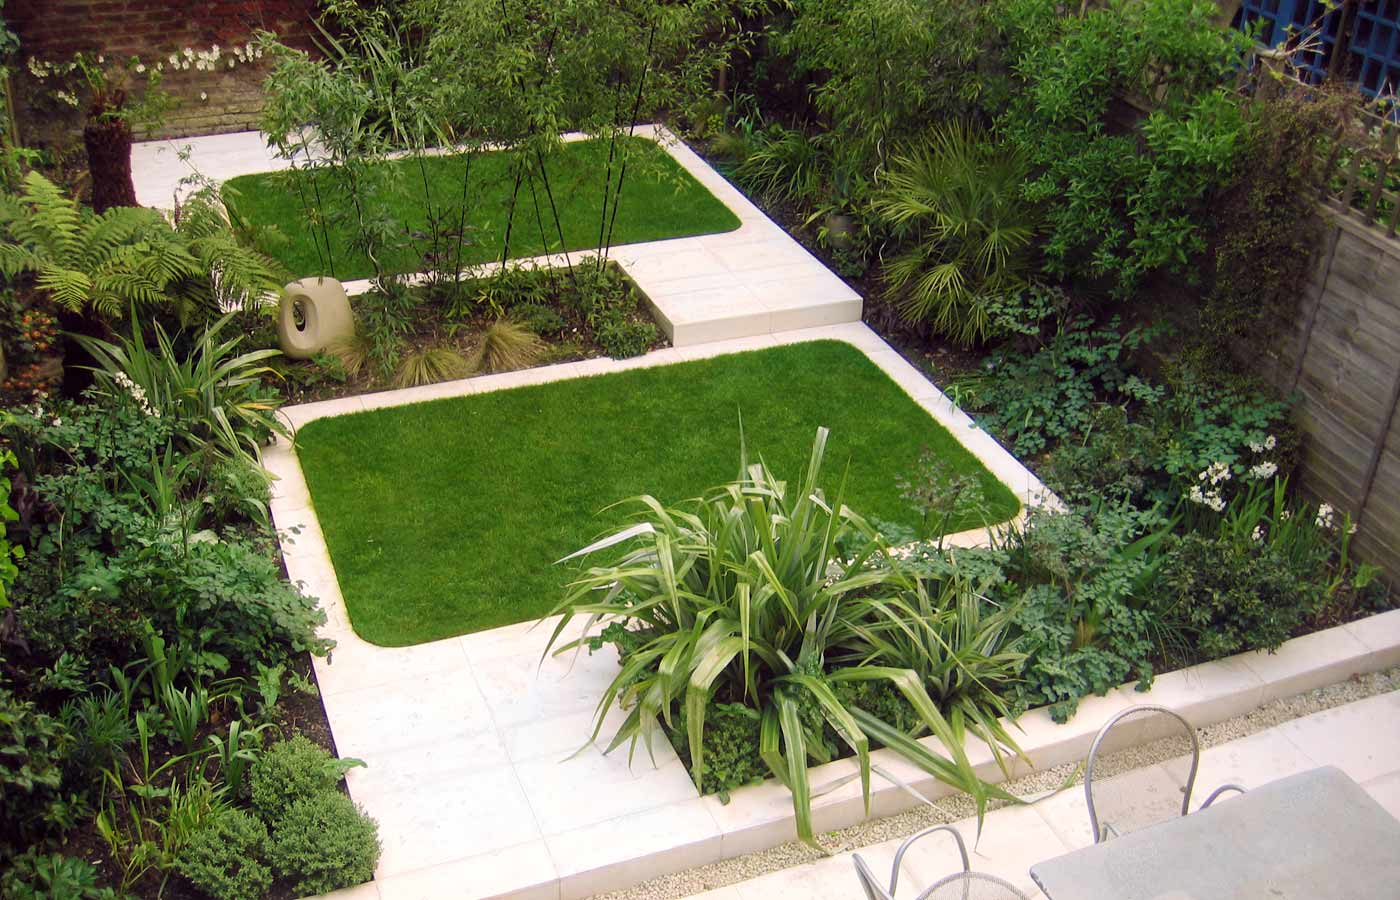 Modern town garden design north facing garden design for Design of the garden